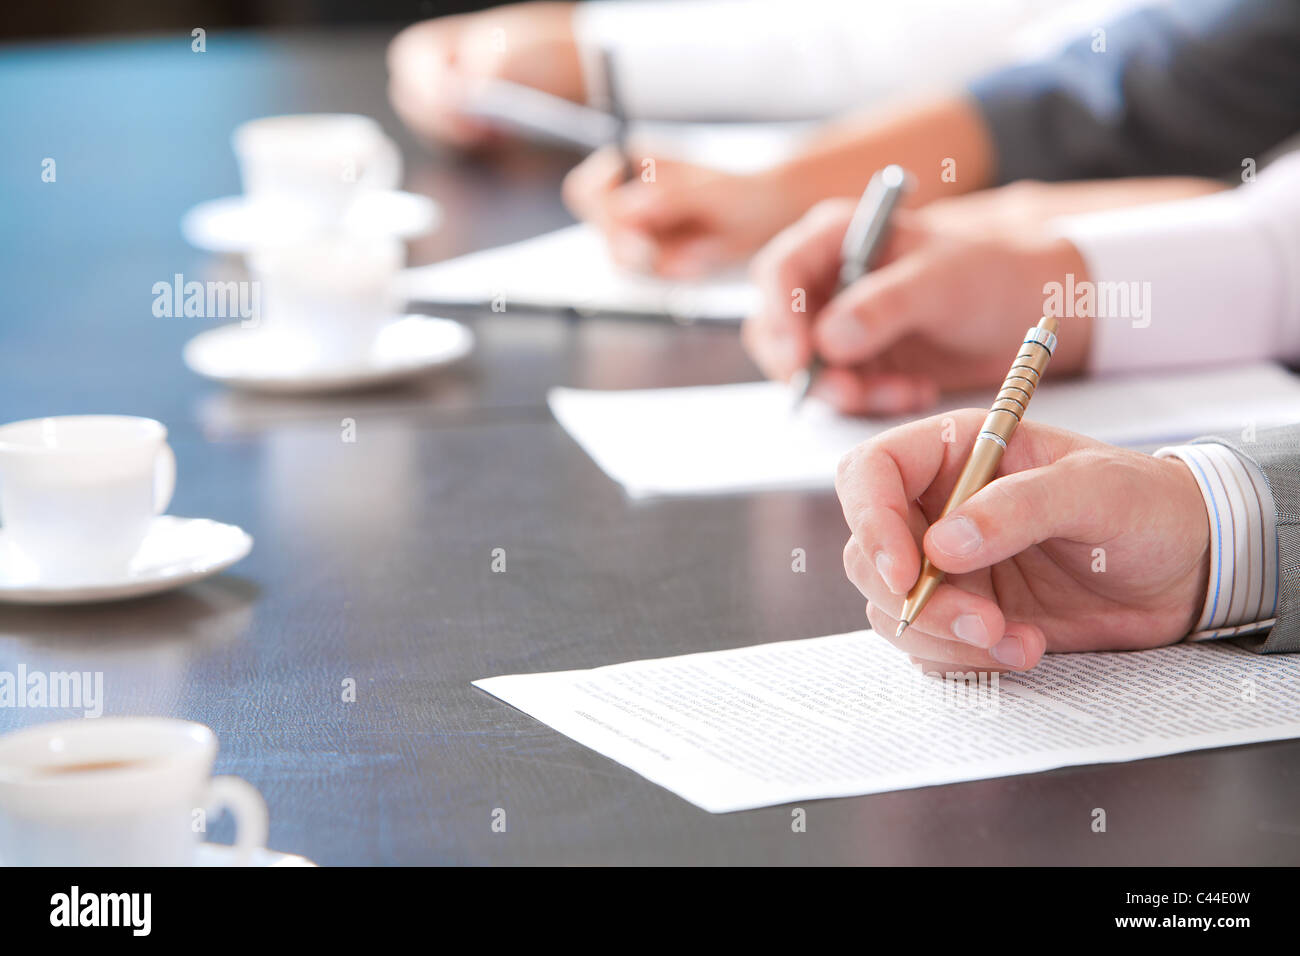 Close-up of masculine hand holding ballpoint over business document on background of human hands with cups of coffee - Stock Image